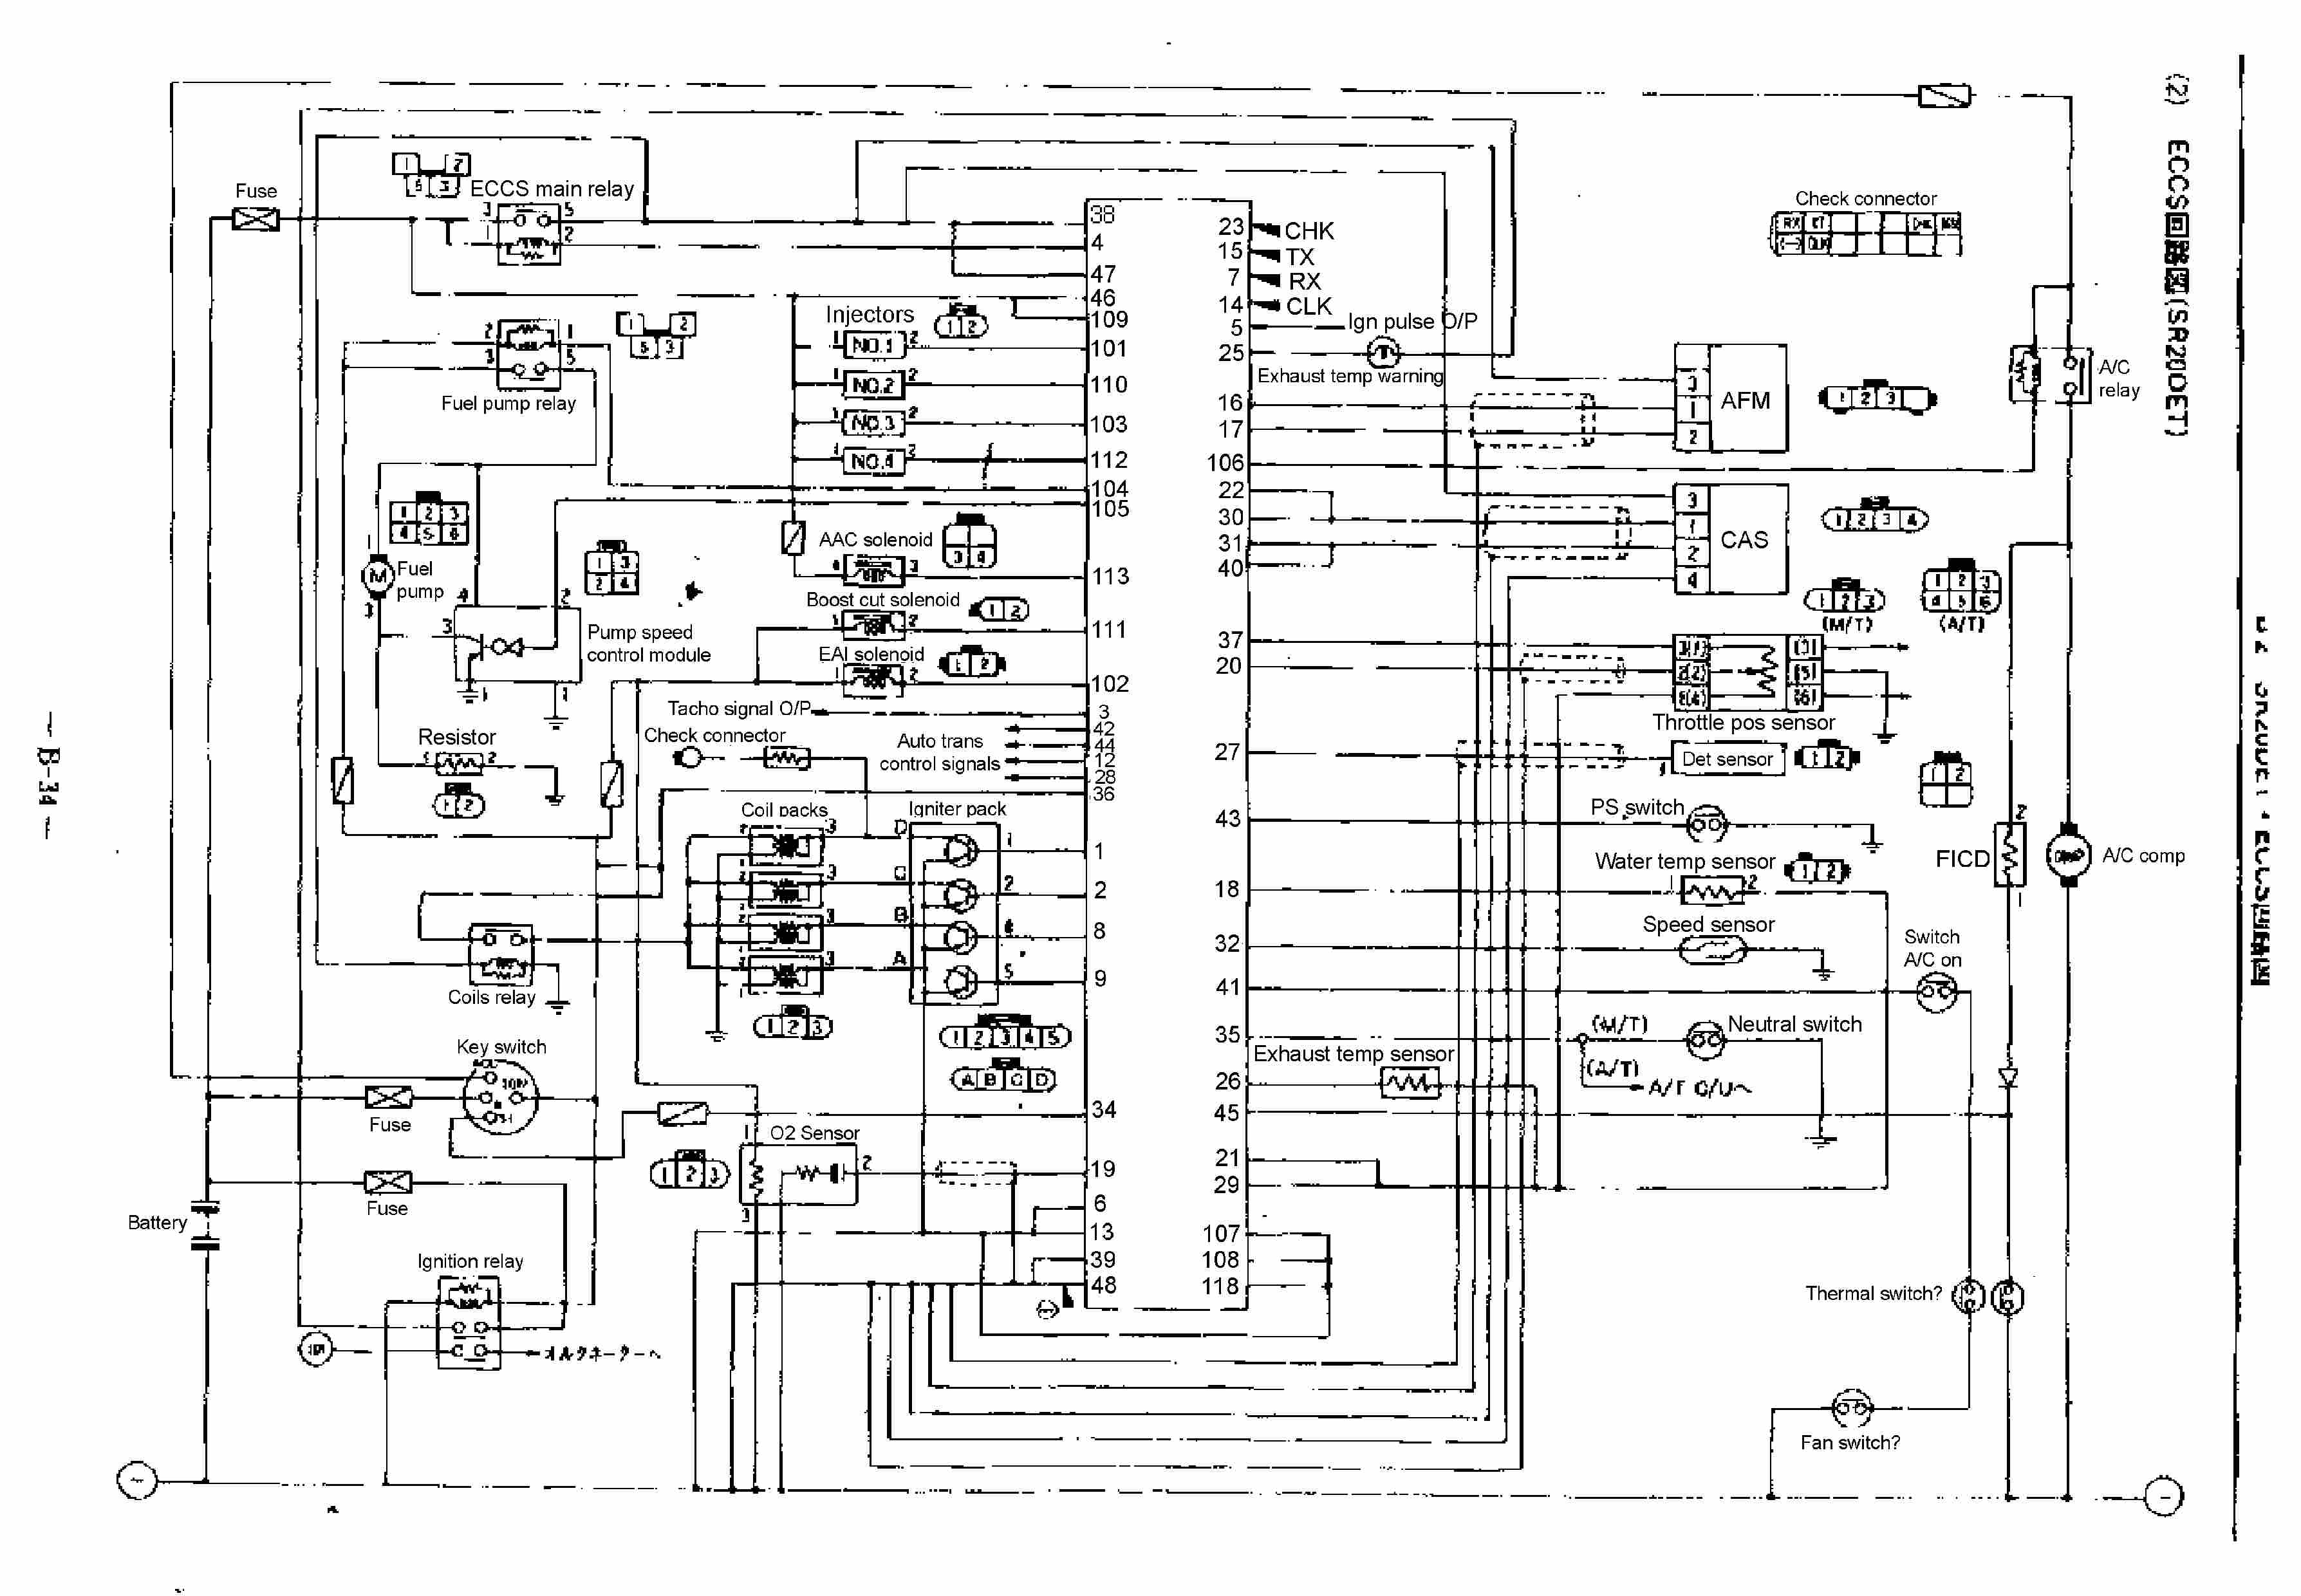 small resolution of 2007 chevy trailblazer mirror wiring diagram free picture wiring 2007 nissan xterra wiring diagram 2007 chevy trailblazer mirror wiring diagram free picture